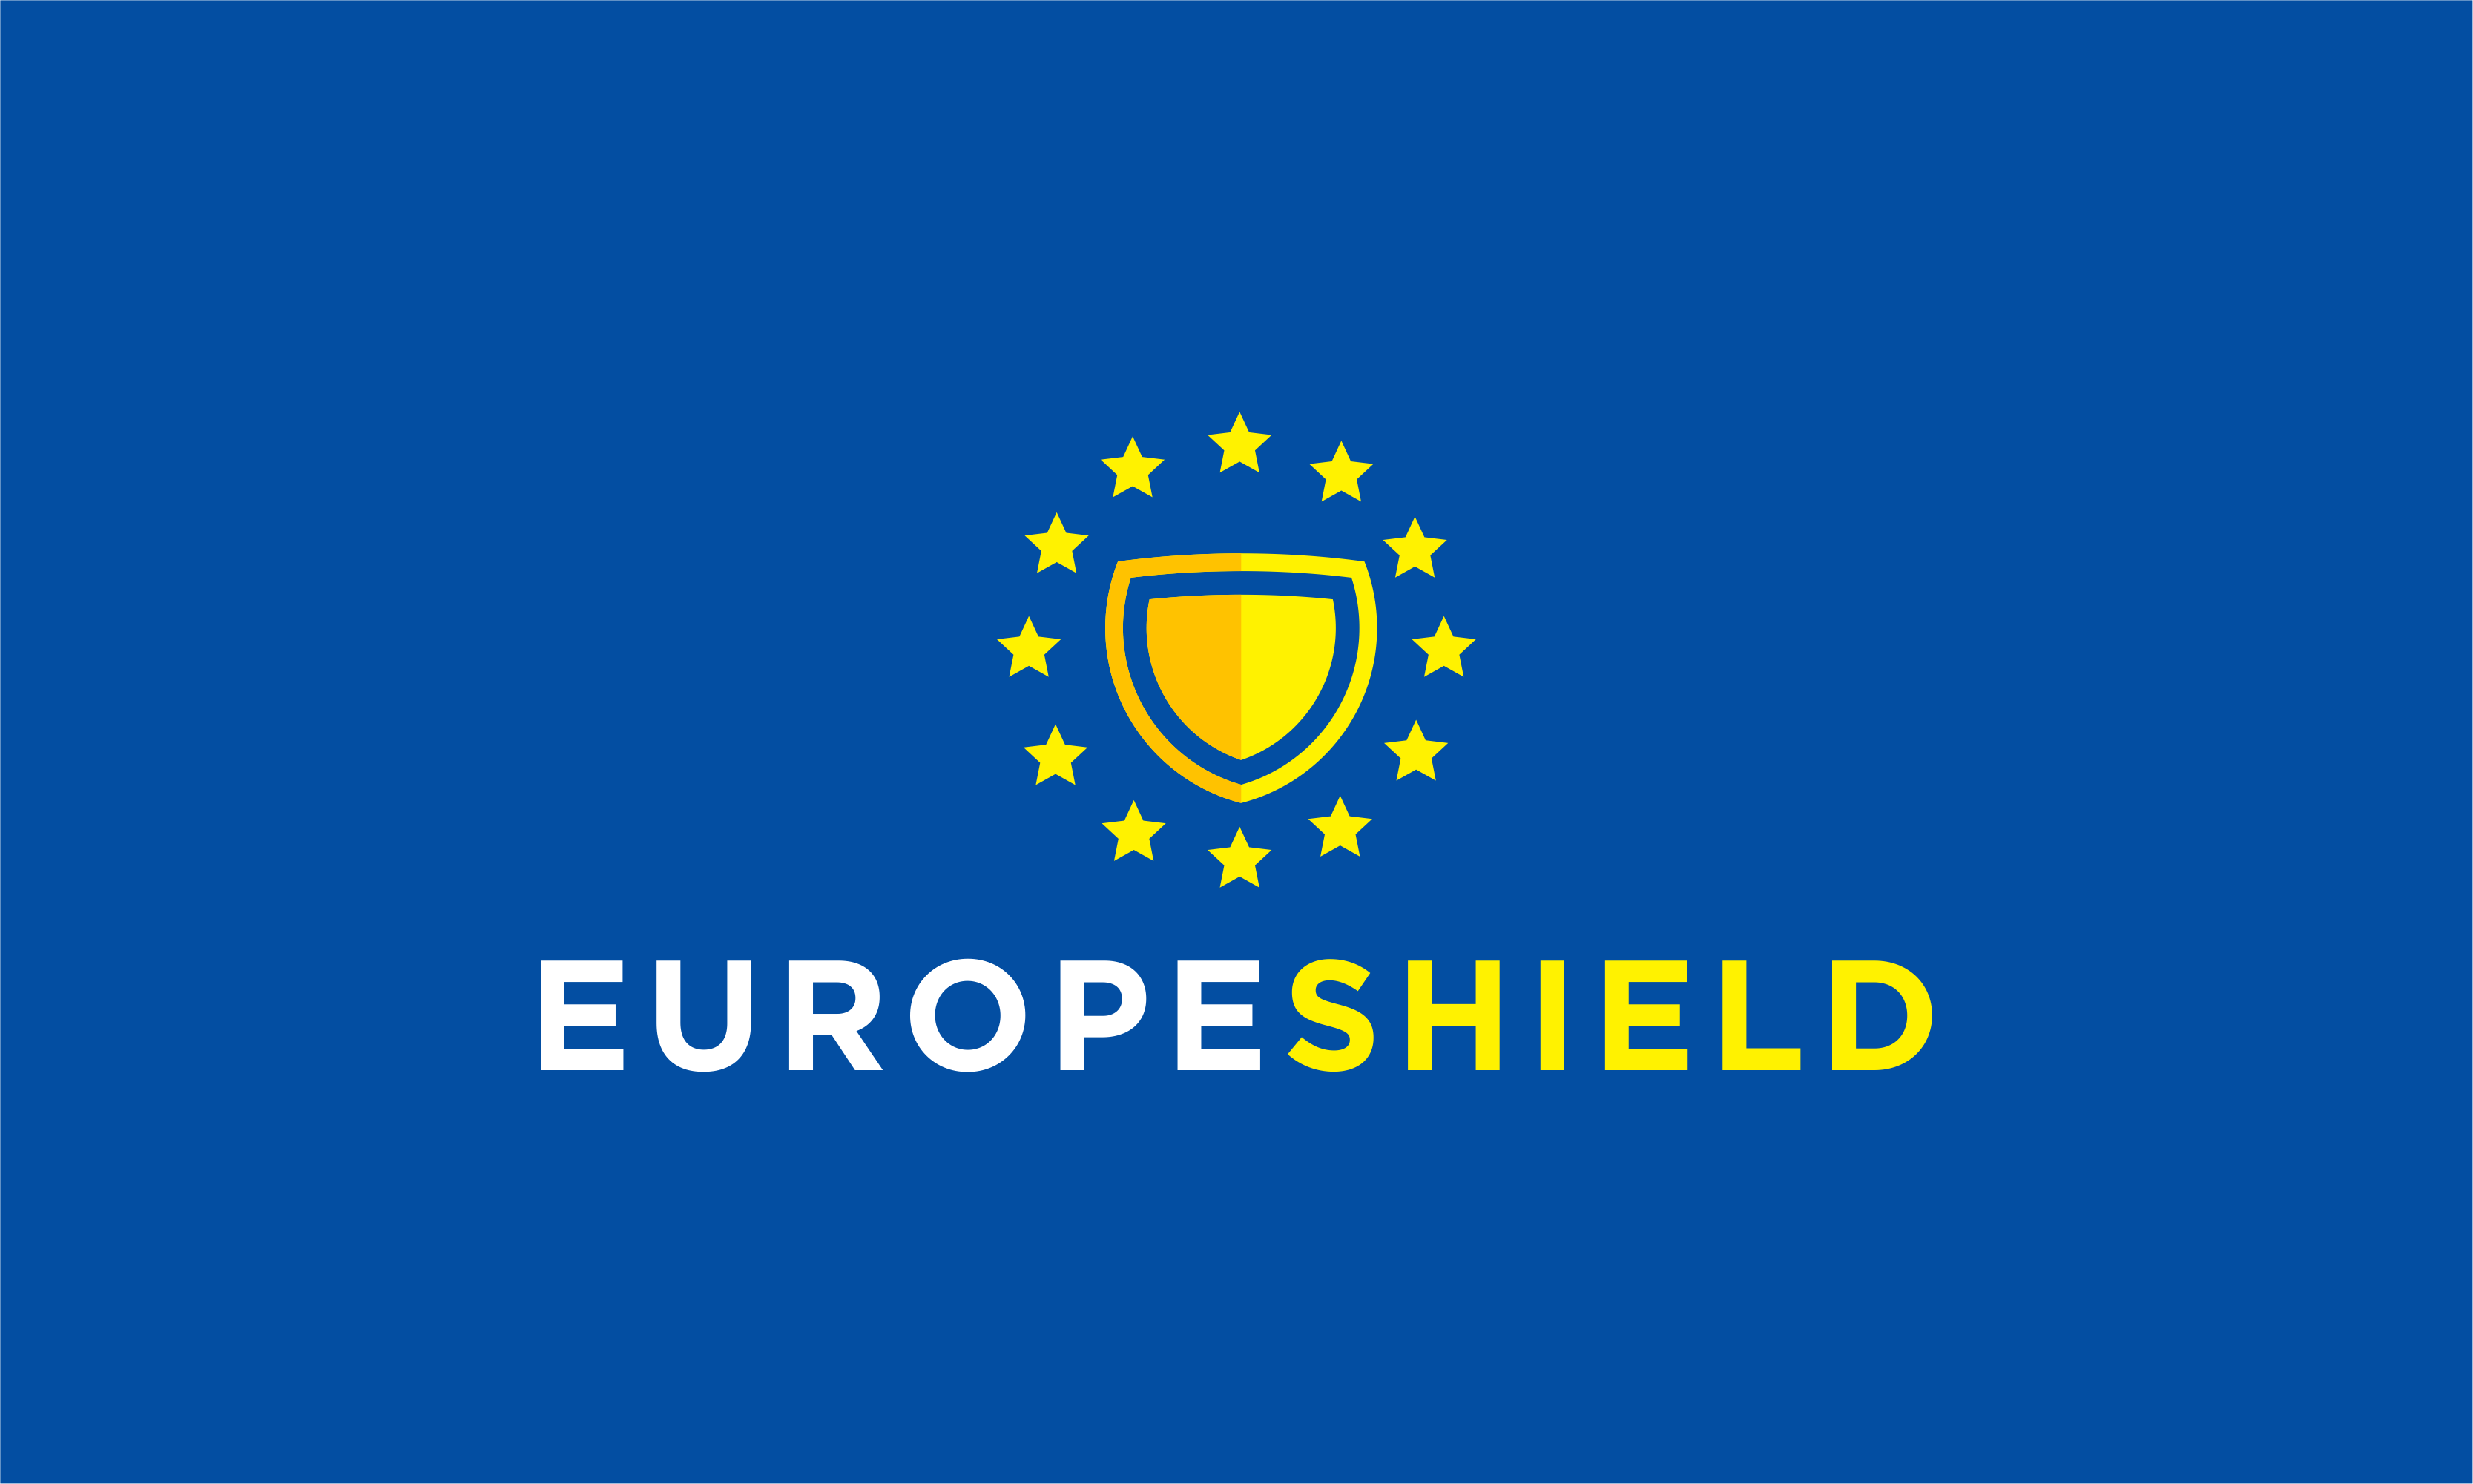 Europeshield